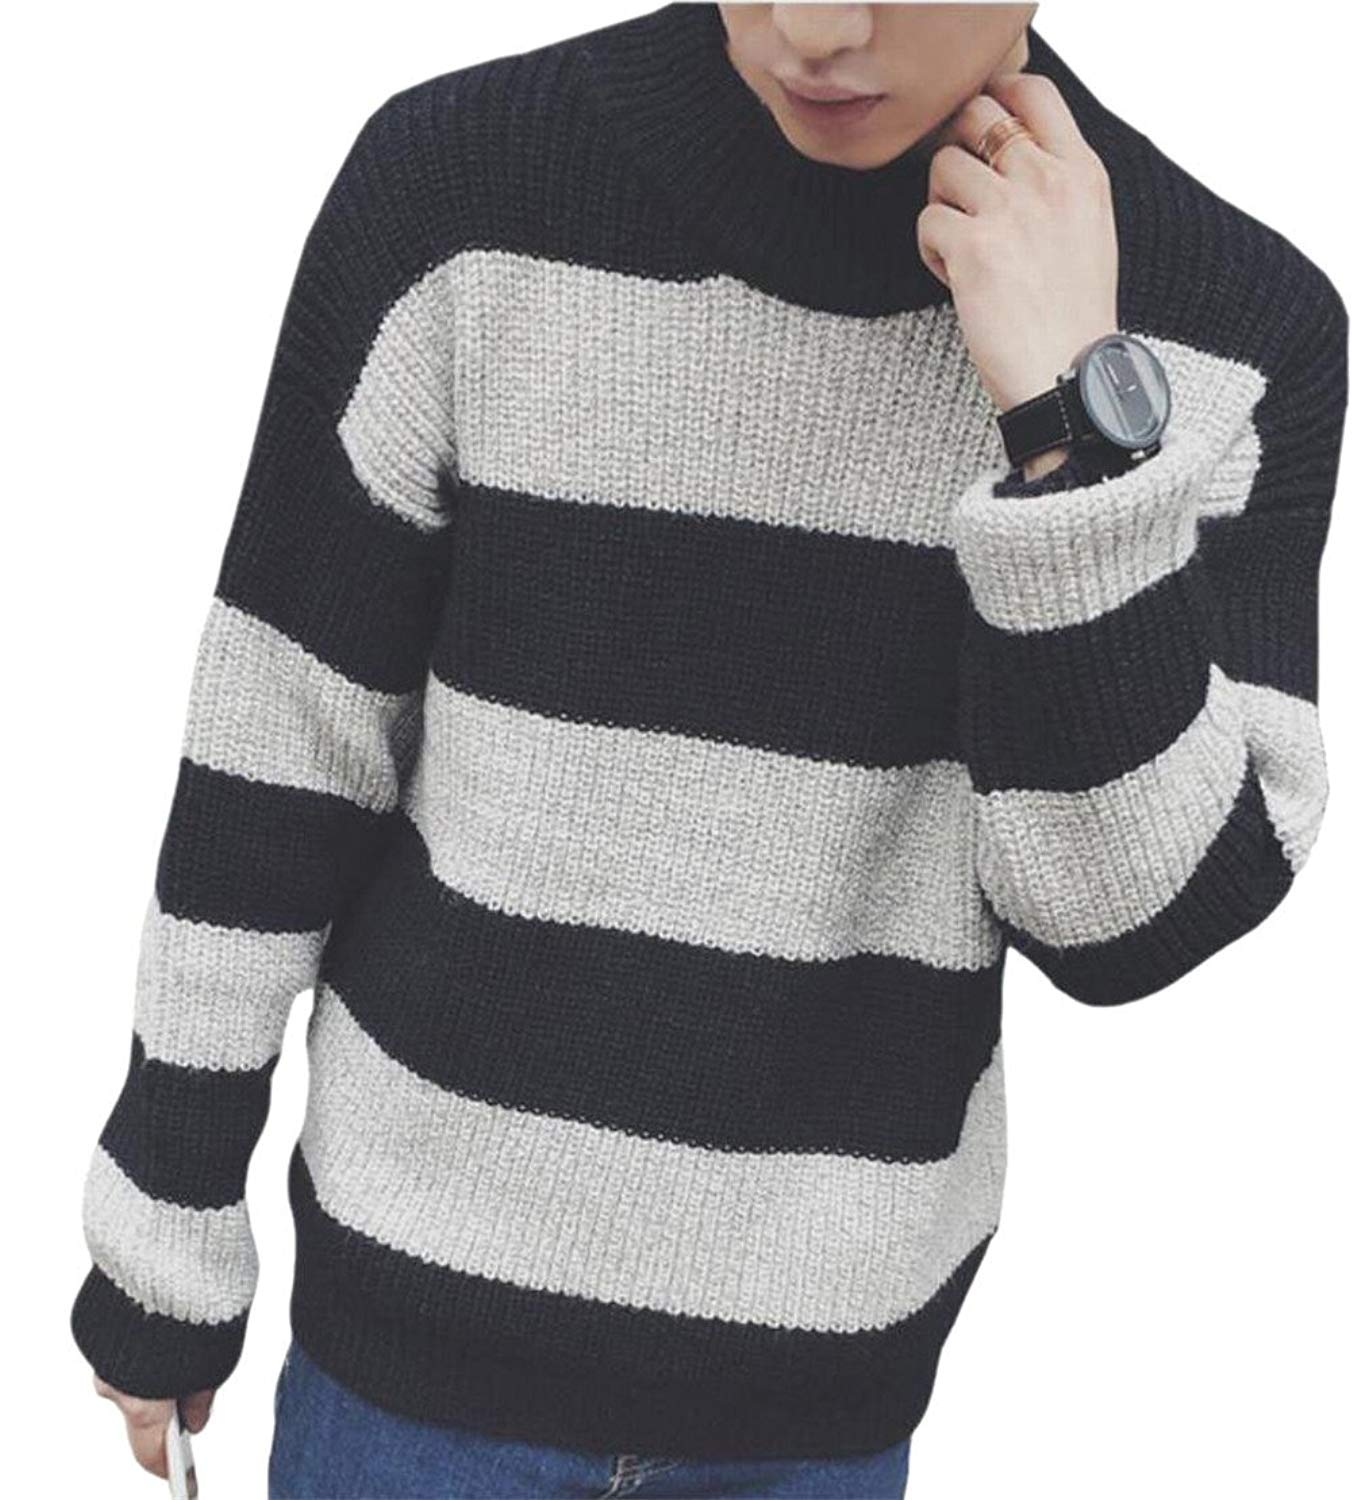 WSPLYSPJY Men Casual Crewneck Long Sleeve Stripes Pullover Knitted Jumper Sweaters